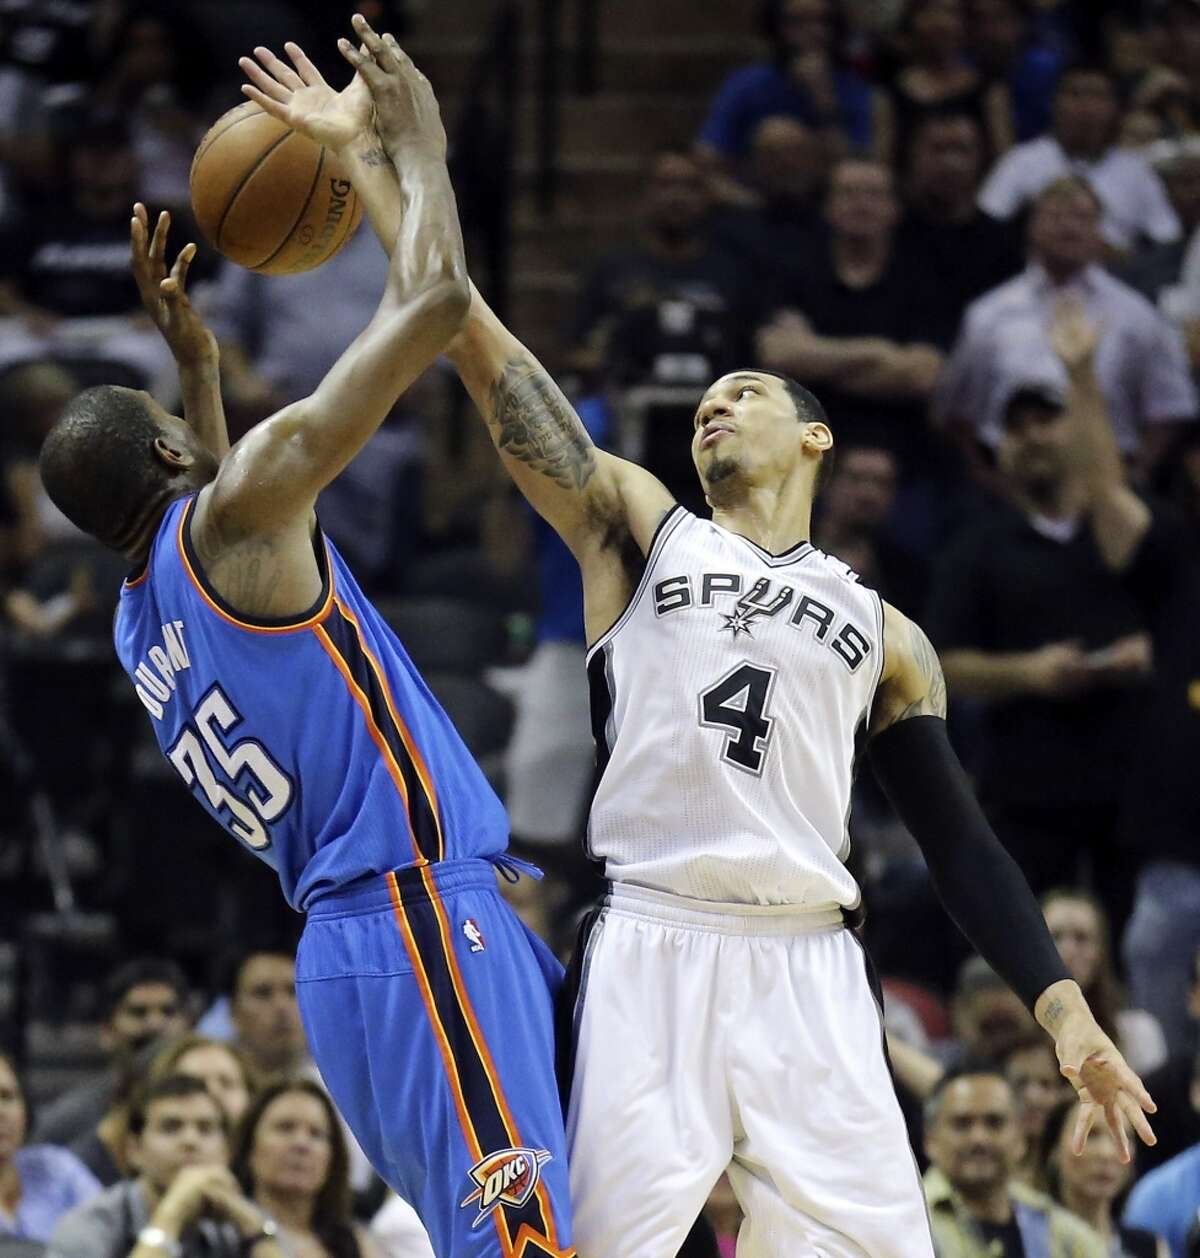 Oklahoma City Thunder's Kevin Durant and San Antonio Spurs' Danny Green grab for a loose ball during second half action in Game 5 of the Western Conference finals Thursday May 29, 2014 at the AT&T Center. The Spurs won 117-89.